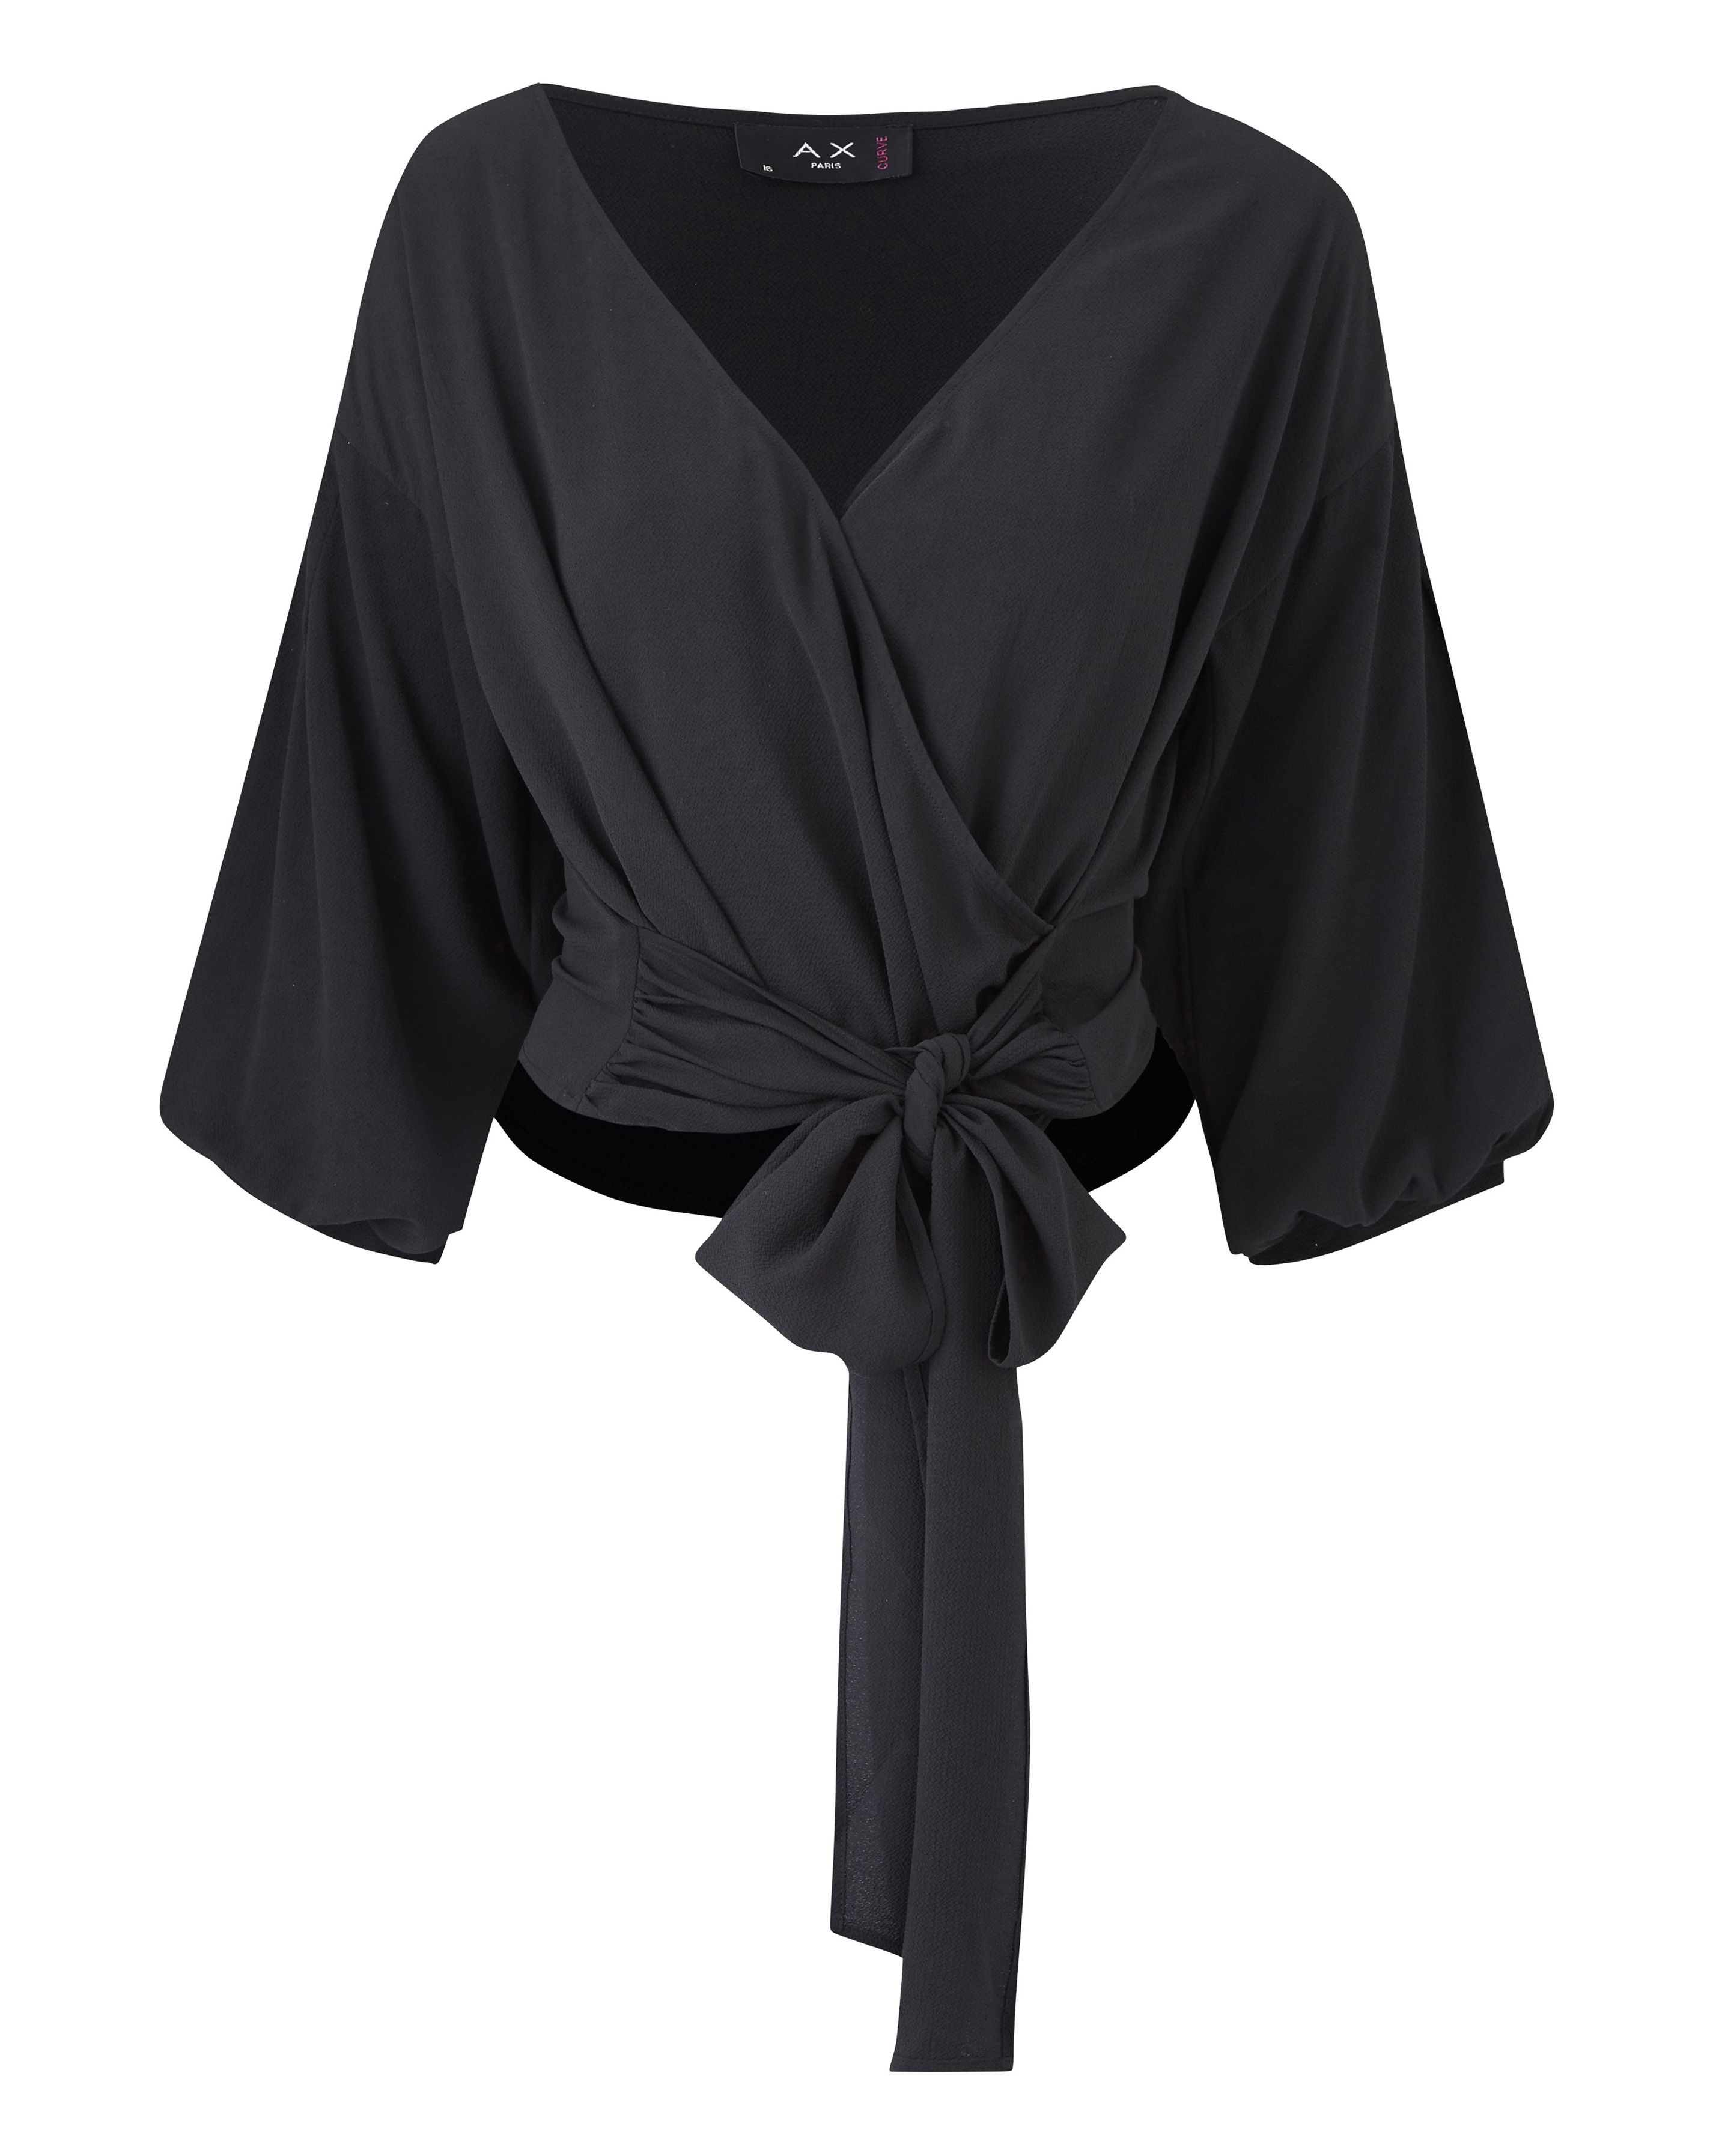 f3c32c25e1c74 Details about Womens AX Paris Curve Kimono Wrap Top - Simply Be